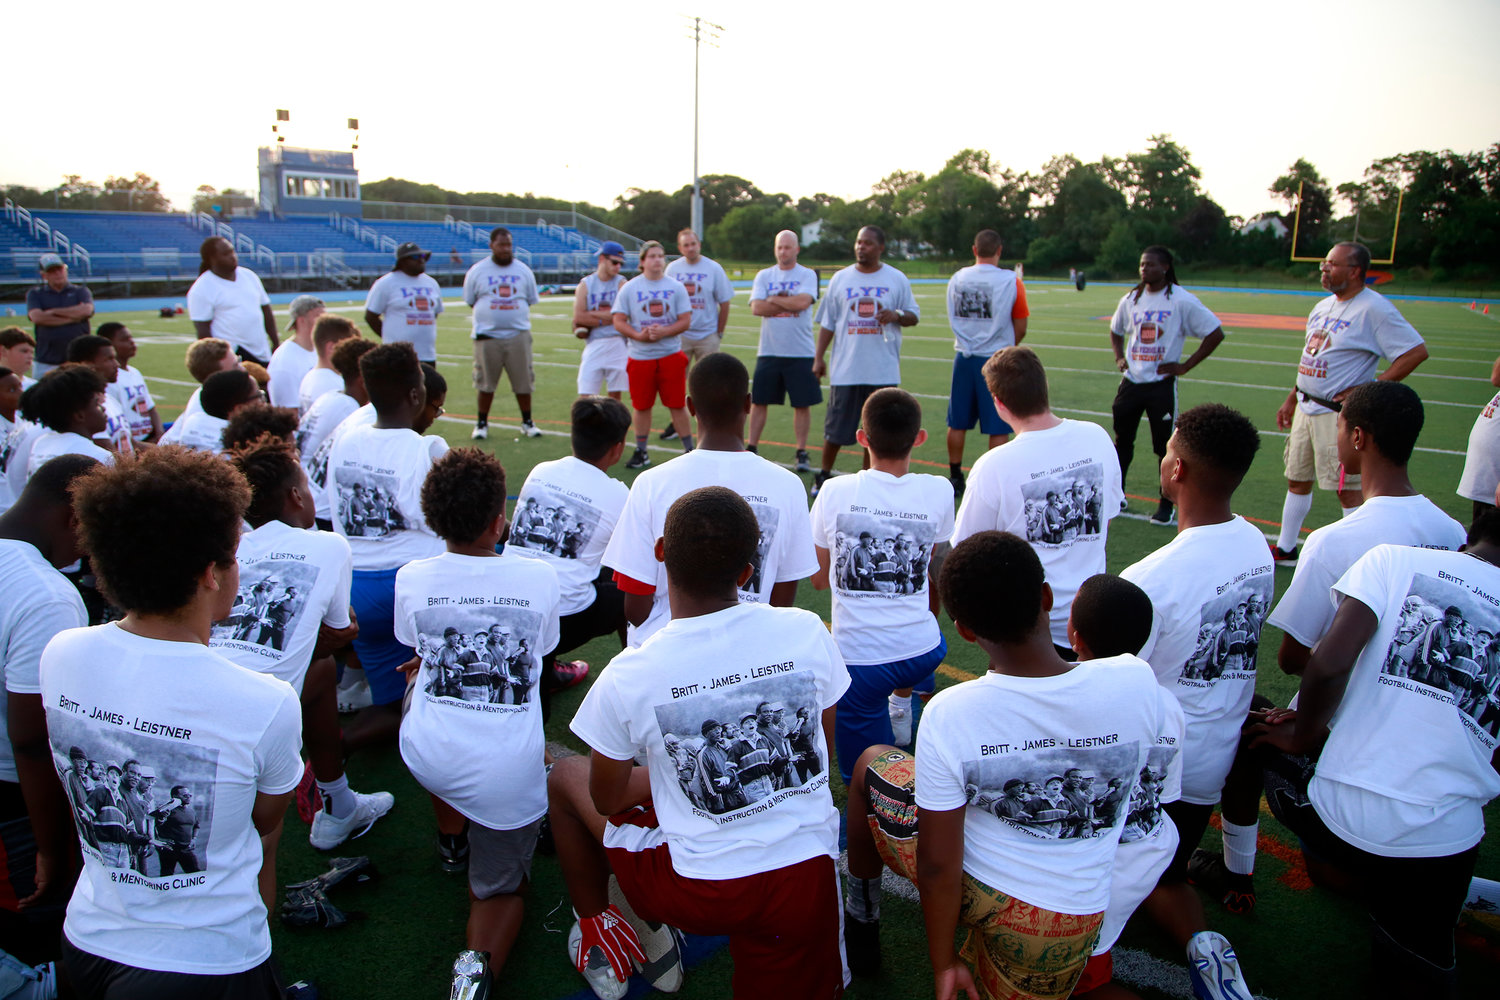 Children wore T-shirts that featured former Malverne High School varsity football coaches Colbert Britt, Ron James and Dr. Ken Leistner during the Youth Clinic on July 26.